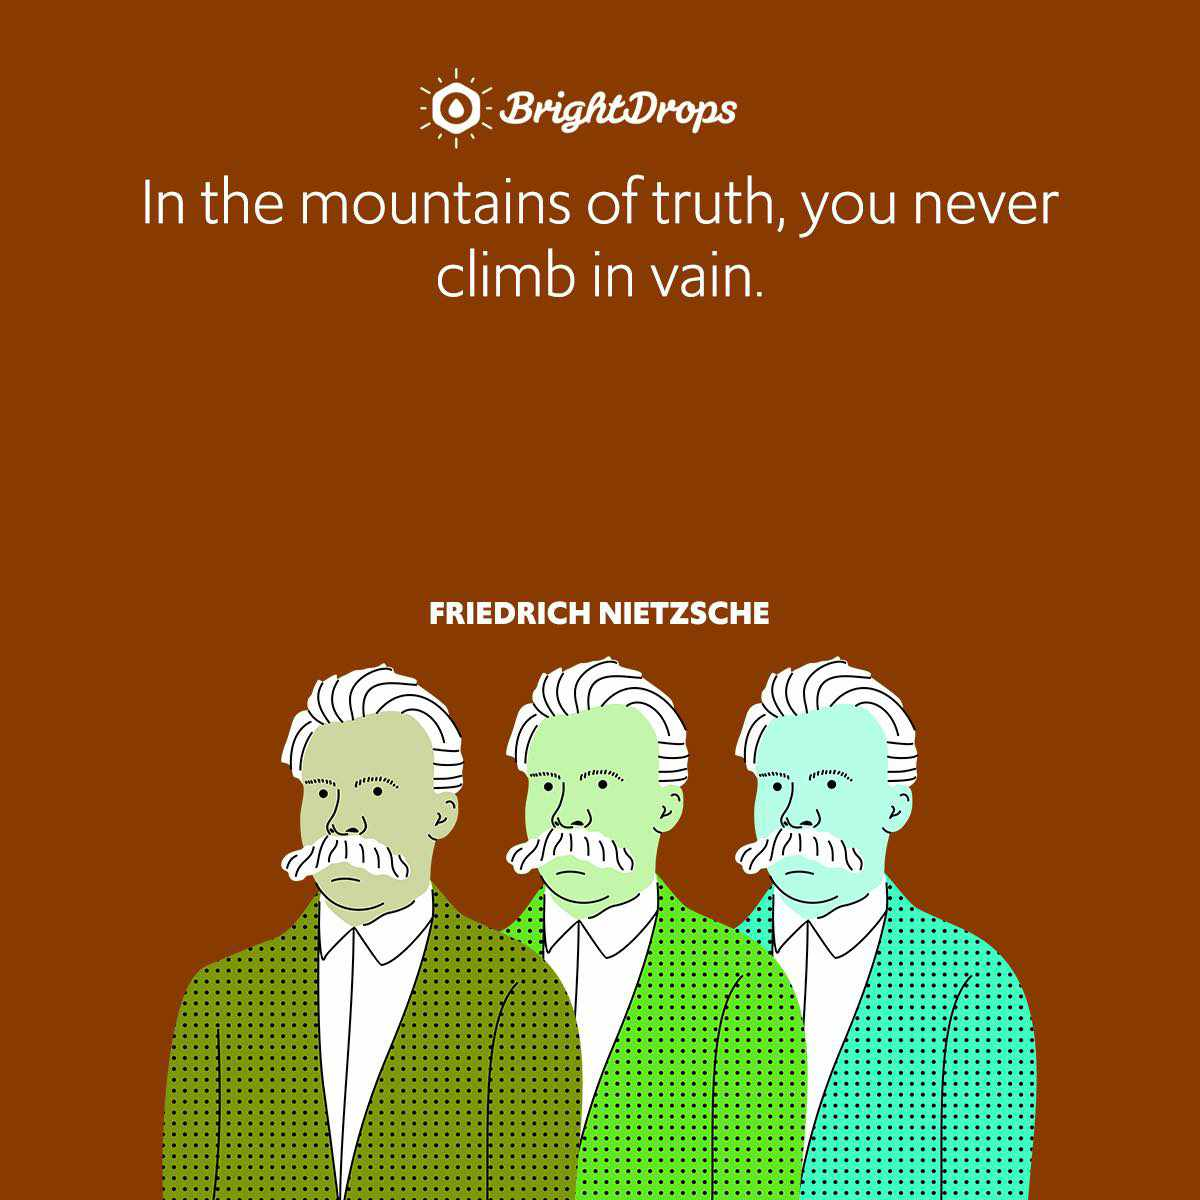 In the mountains of truth, you never climb in vain.